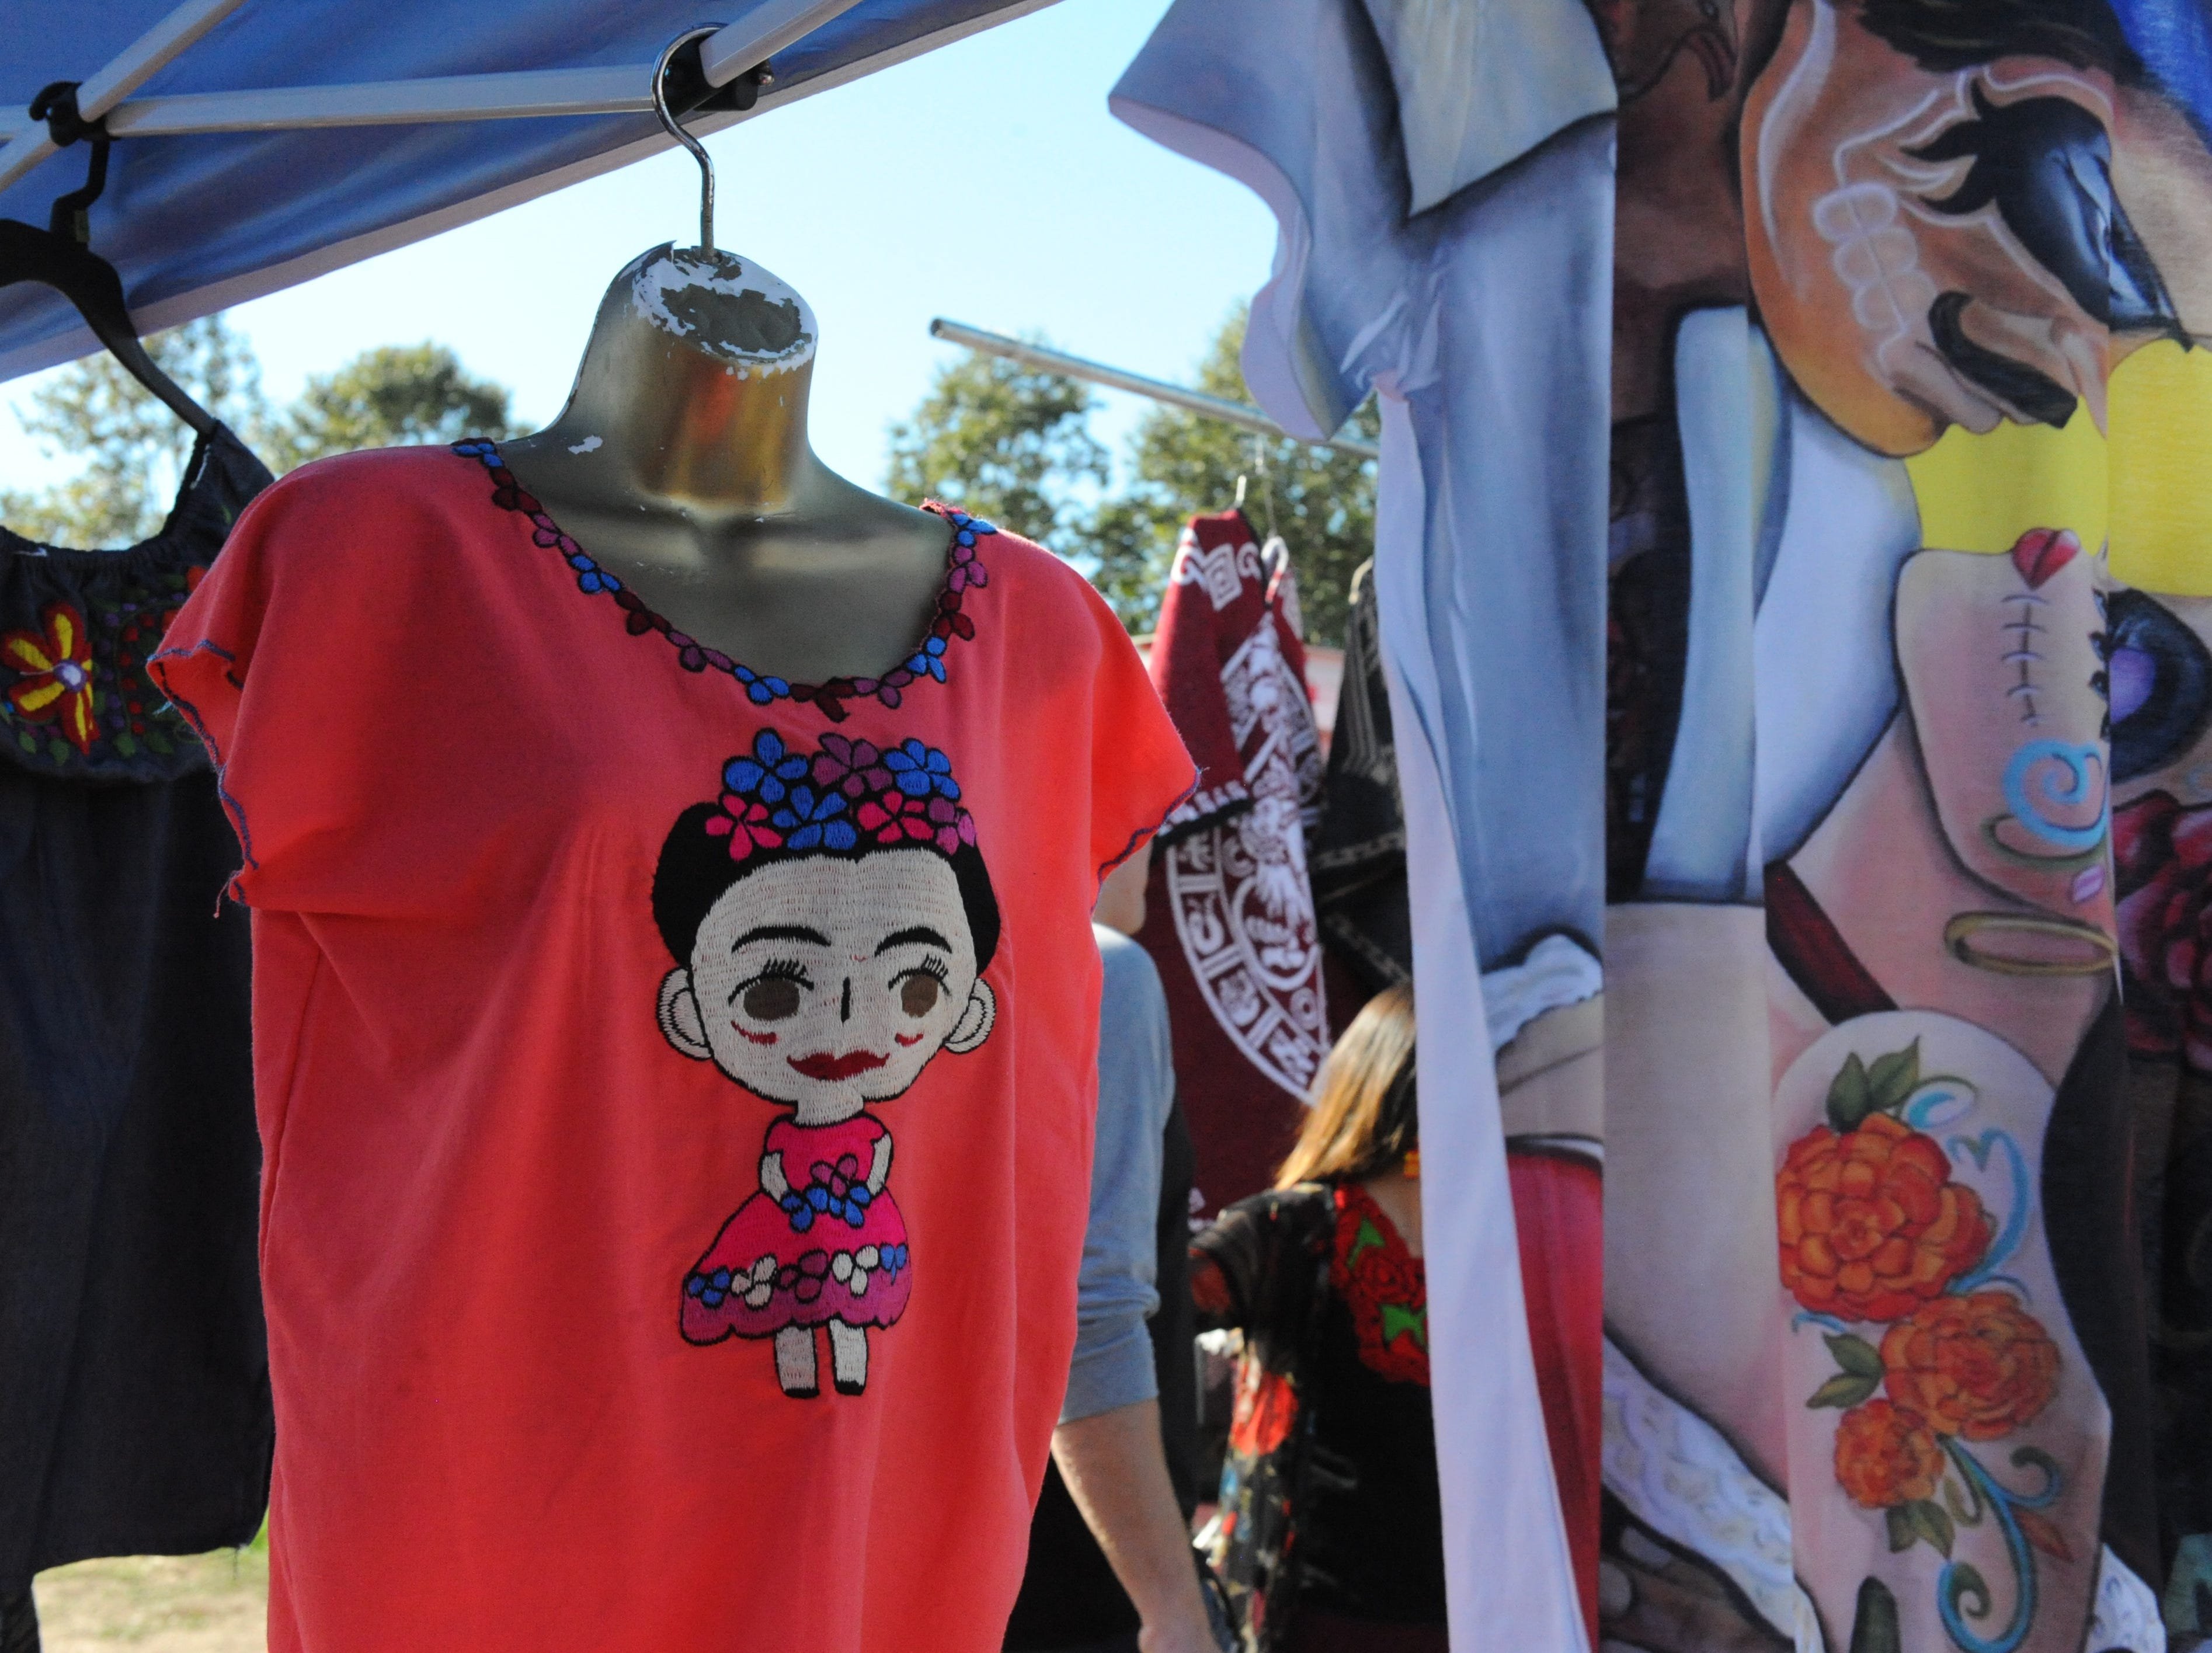 A Mexican blouse with the cartoon image of Frida Kahlo for sale by Sandy's of Watsonville at Sunday's Día de los Muertos celebration in Salinas.